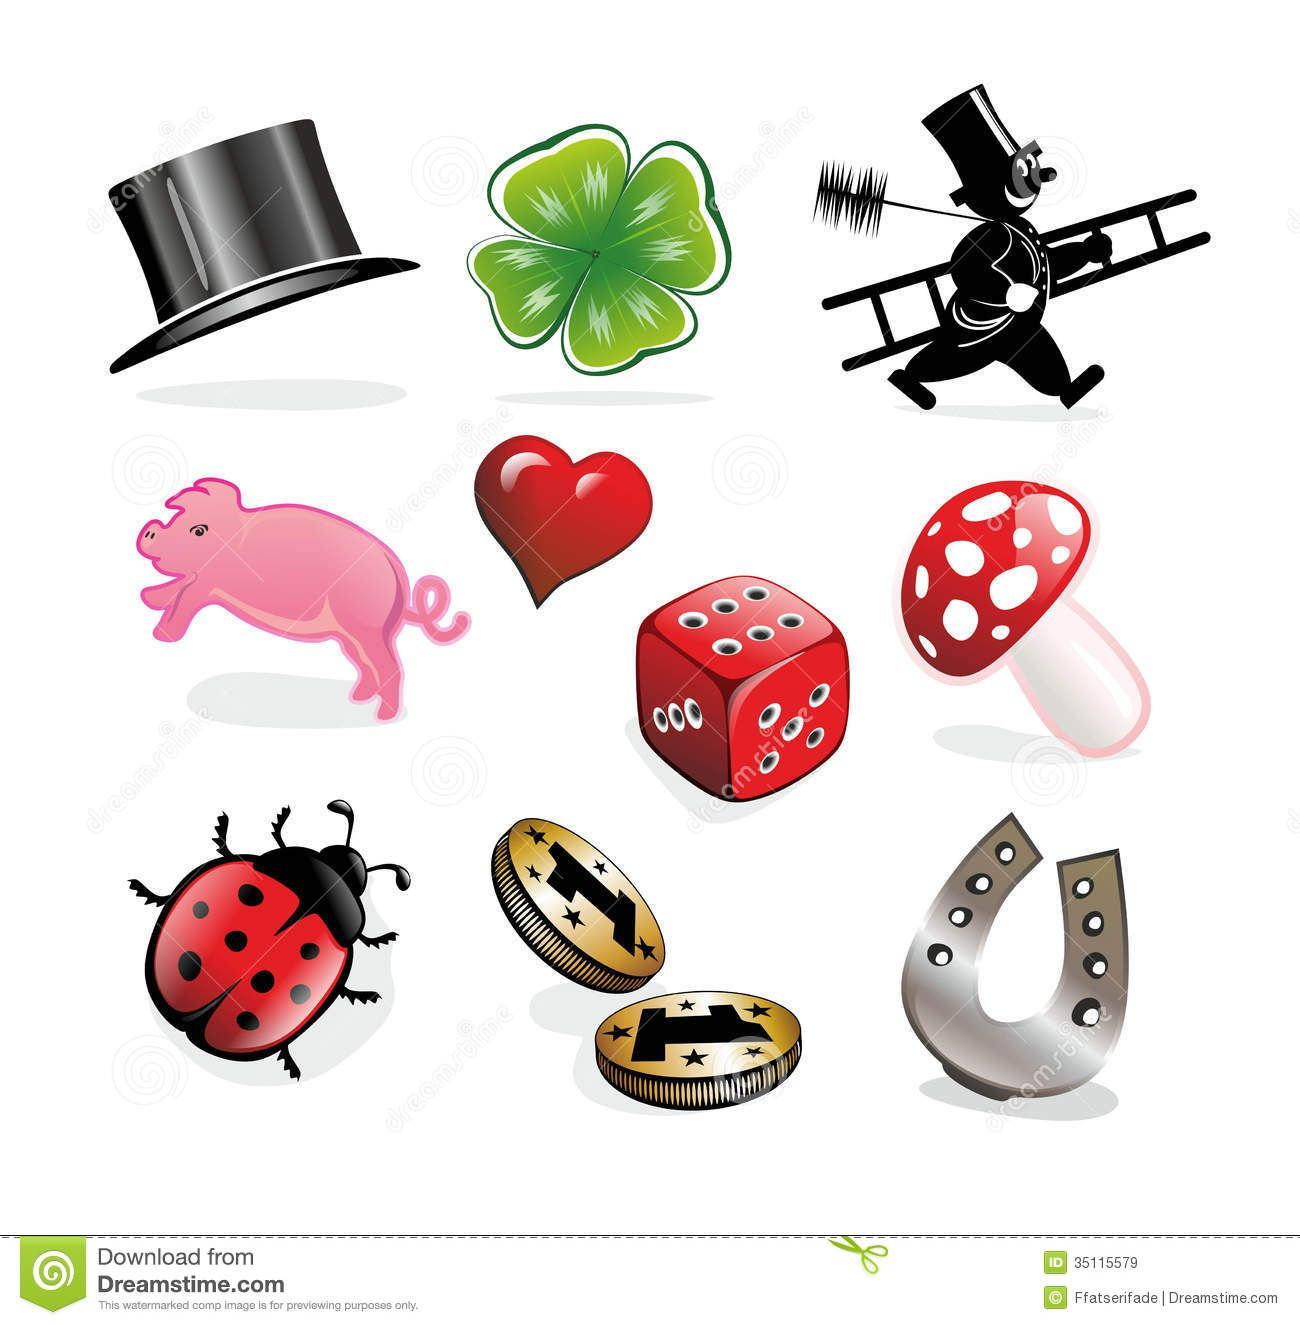 Images for lucky symbols for business graphic pinterest images for lucky symbols for business buycottarizona Image collections